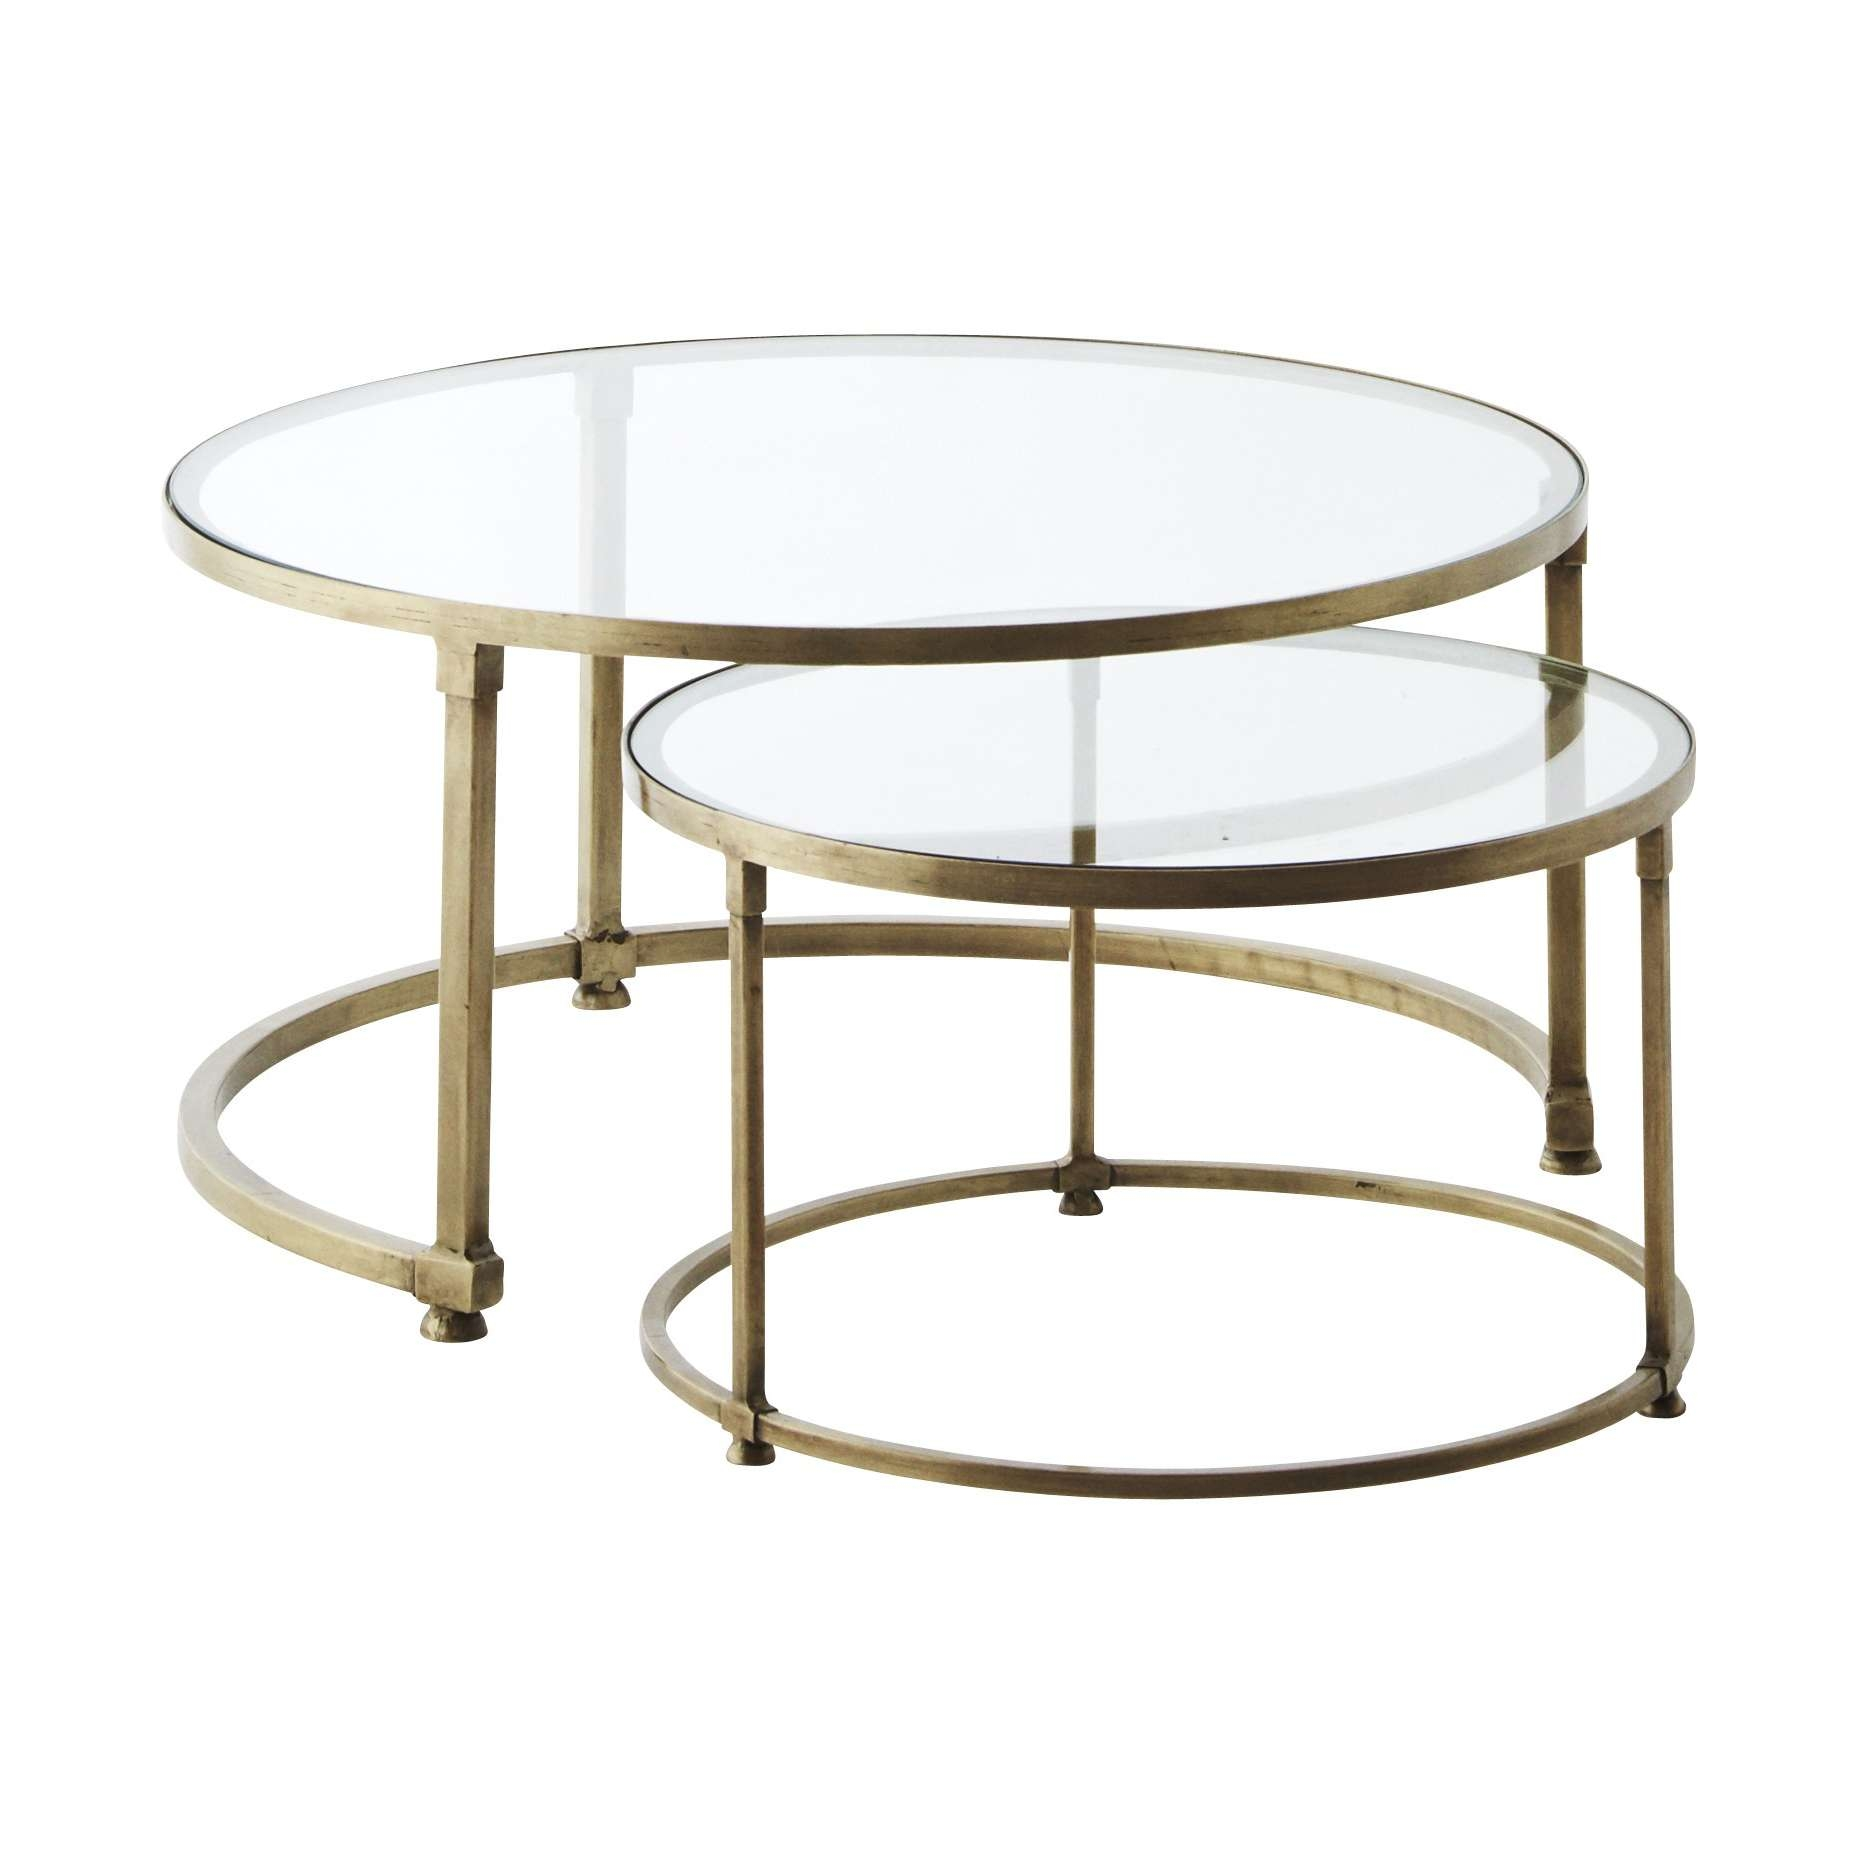 Fashionable Round Glass Coffee Tables Regarding Coffee Tables Wood Glass  Pier 1 Imports Round Uk 2861